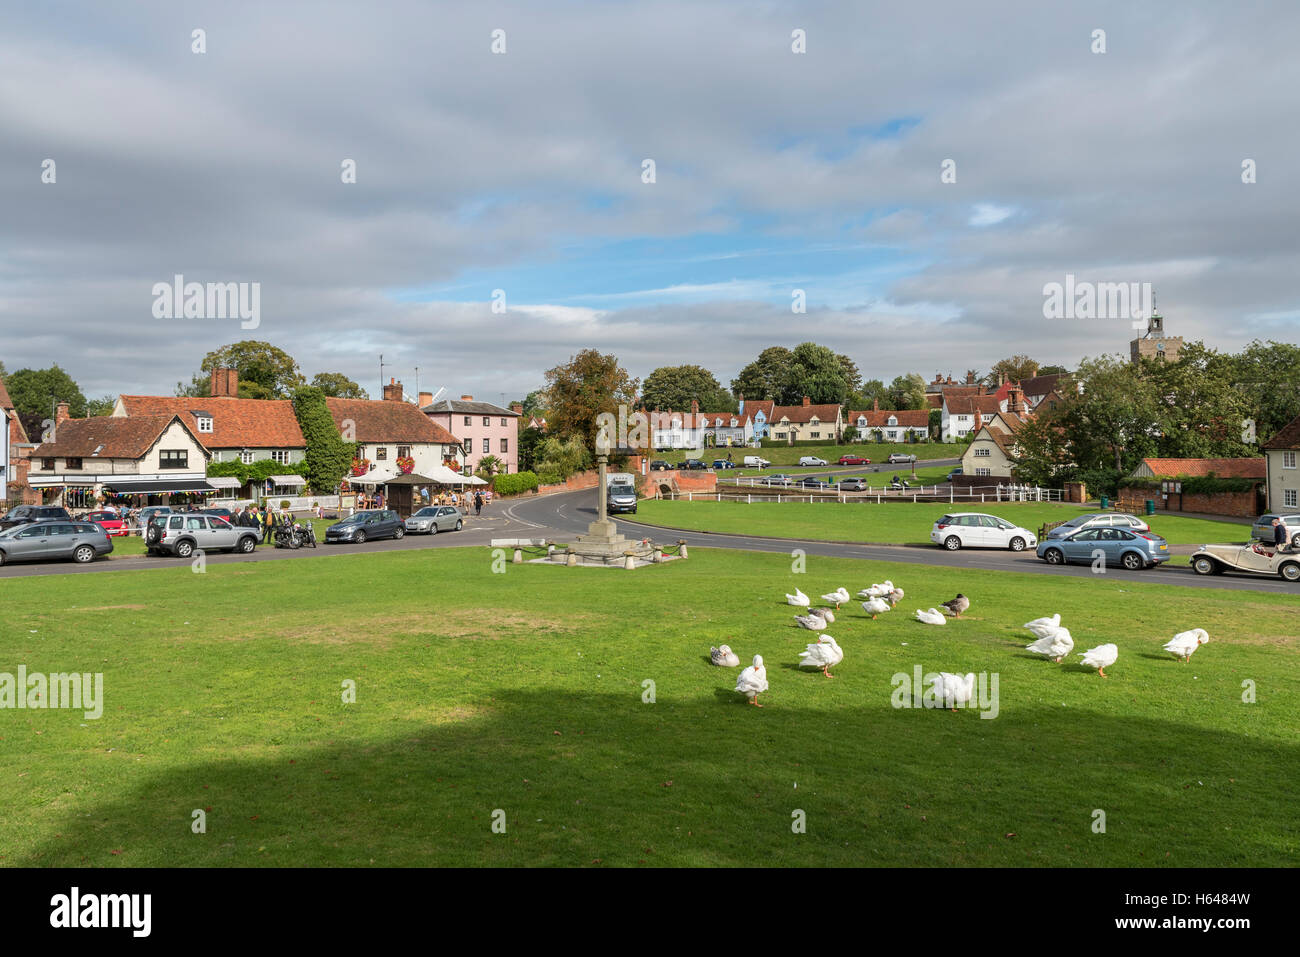 picture-postcard-english-village-view-across-the-green-finchingfield-H6484W.jpg